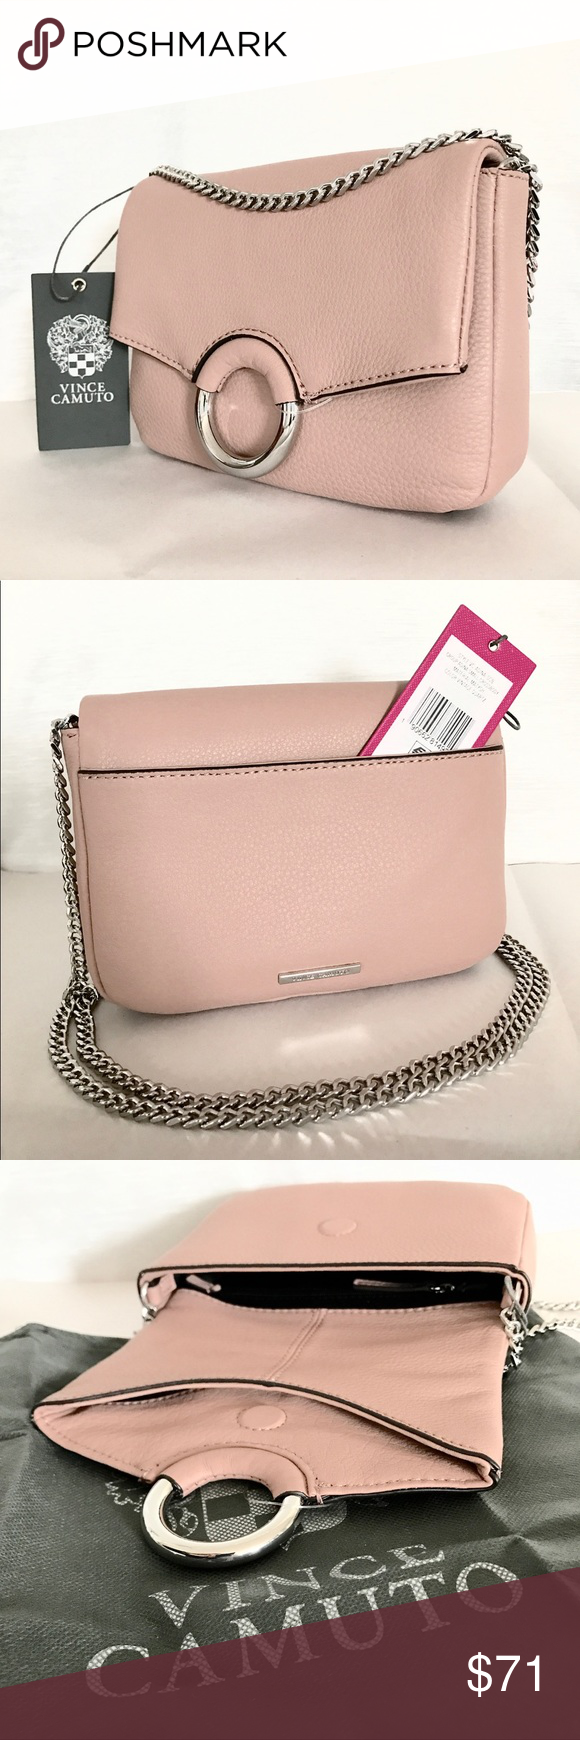 c35cbdb326b6 New Vince Camuto Adina chain crossbody Super chic Vince Camuto Leather Adina  chained crossbody bag in a vintage quartz color which is a grayish pink.